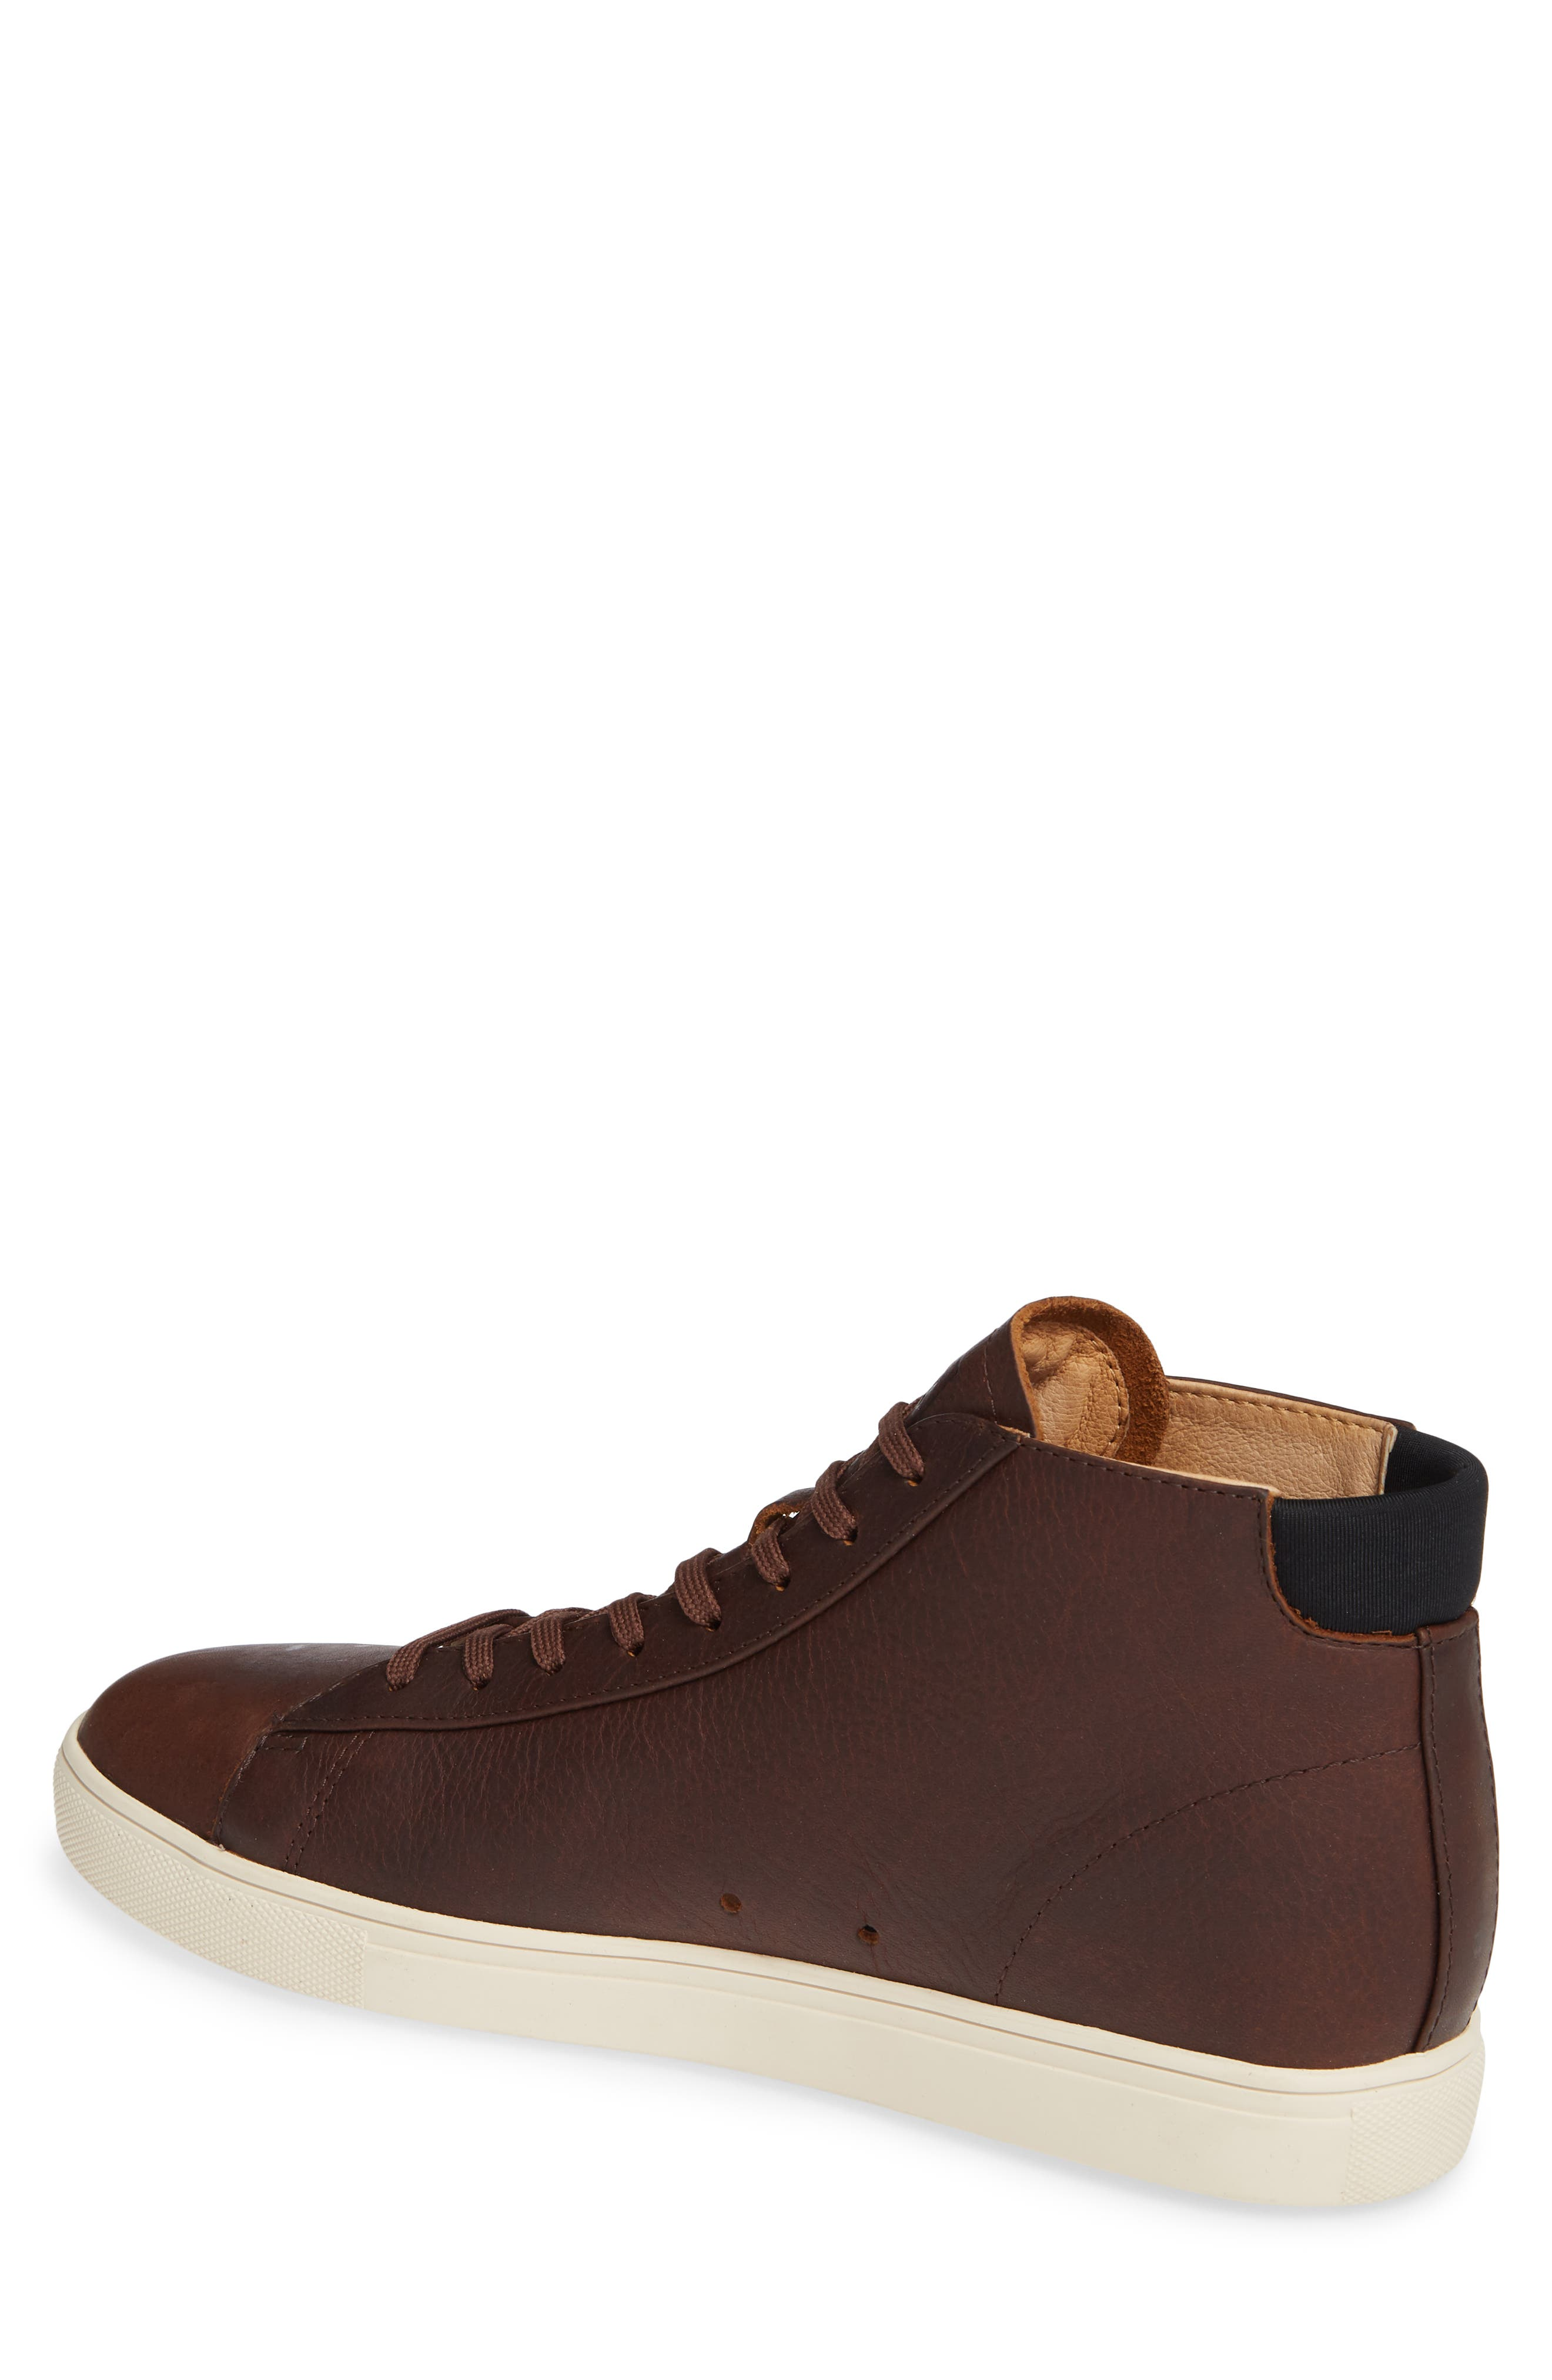 'Bradley Mid' Sneaker,                             Alternate thumbnail 2, color,                             COCOA LEATHER